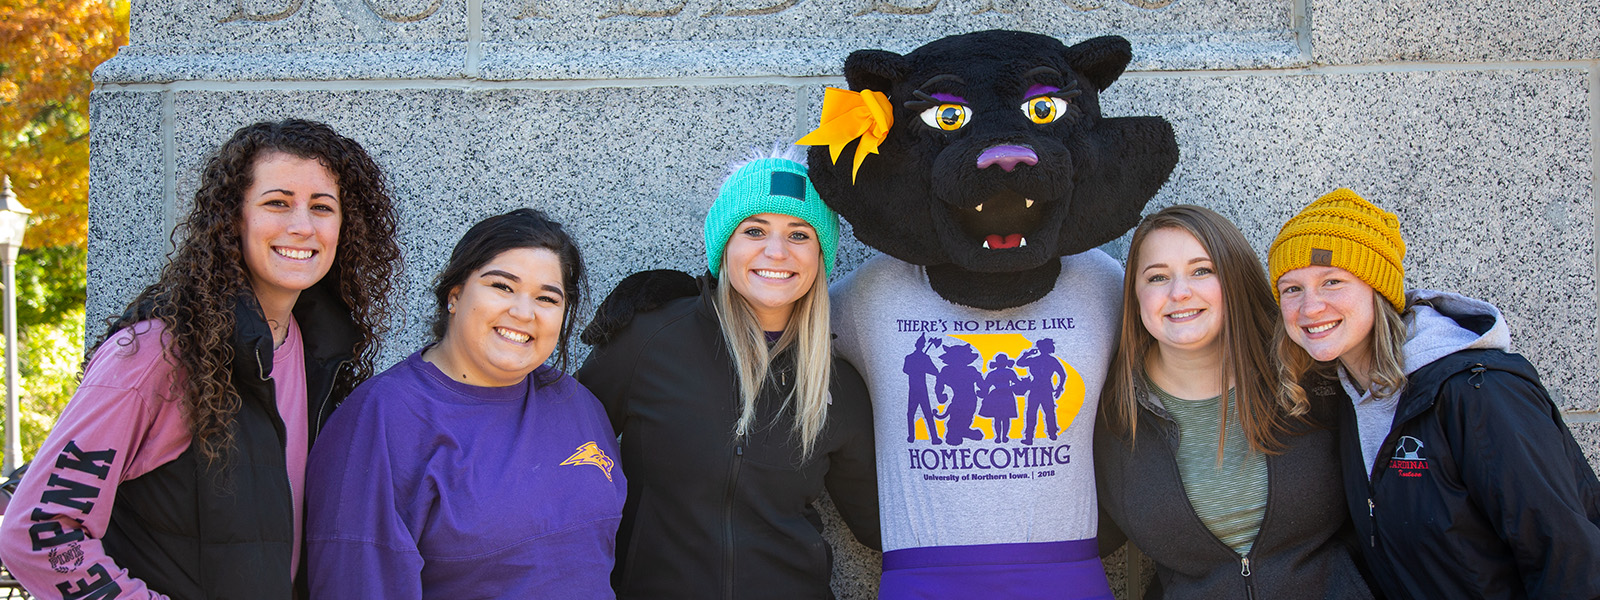 UNI students at homecoming with TK